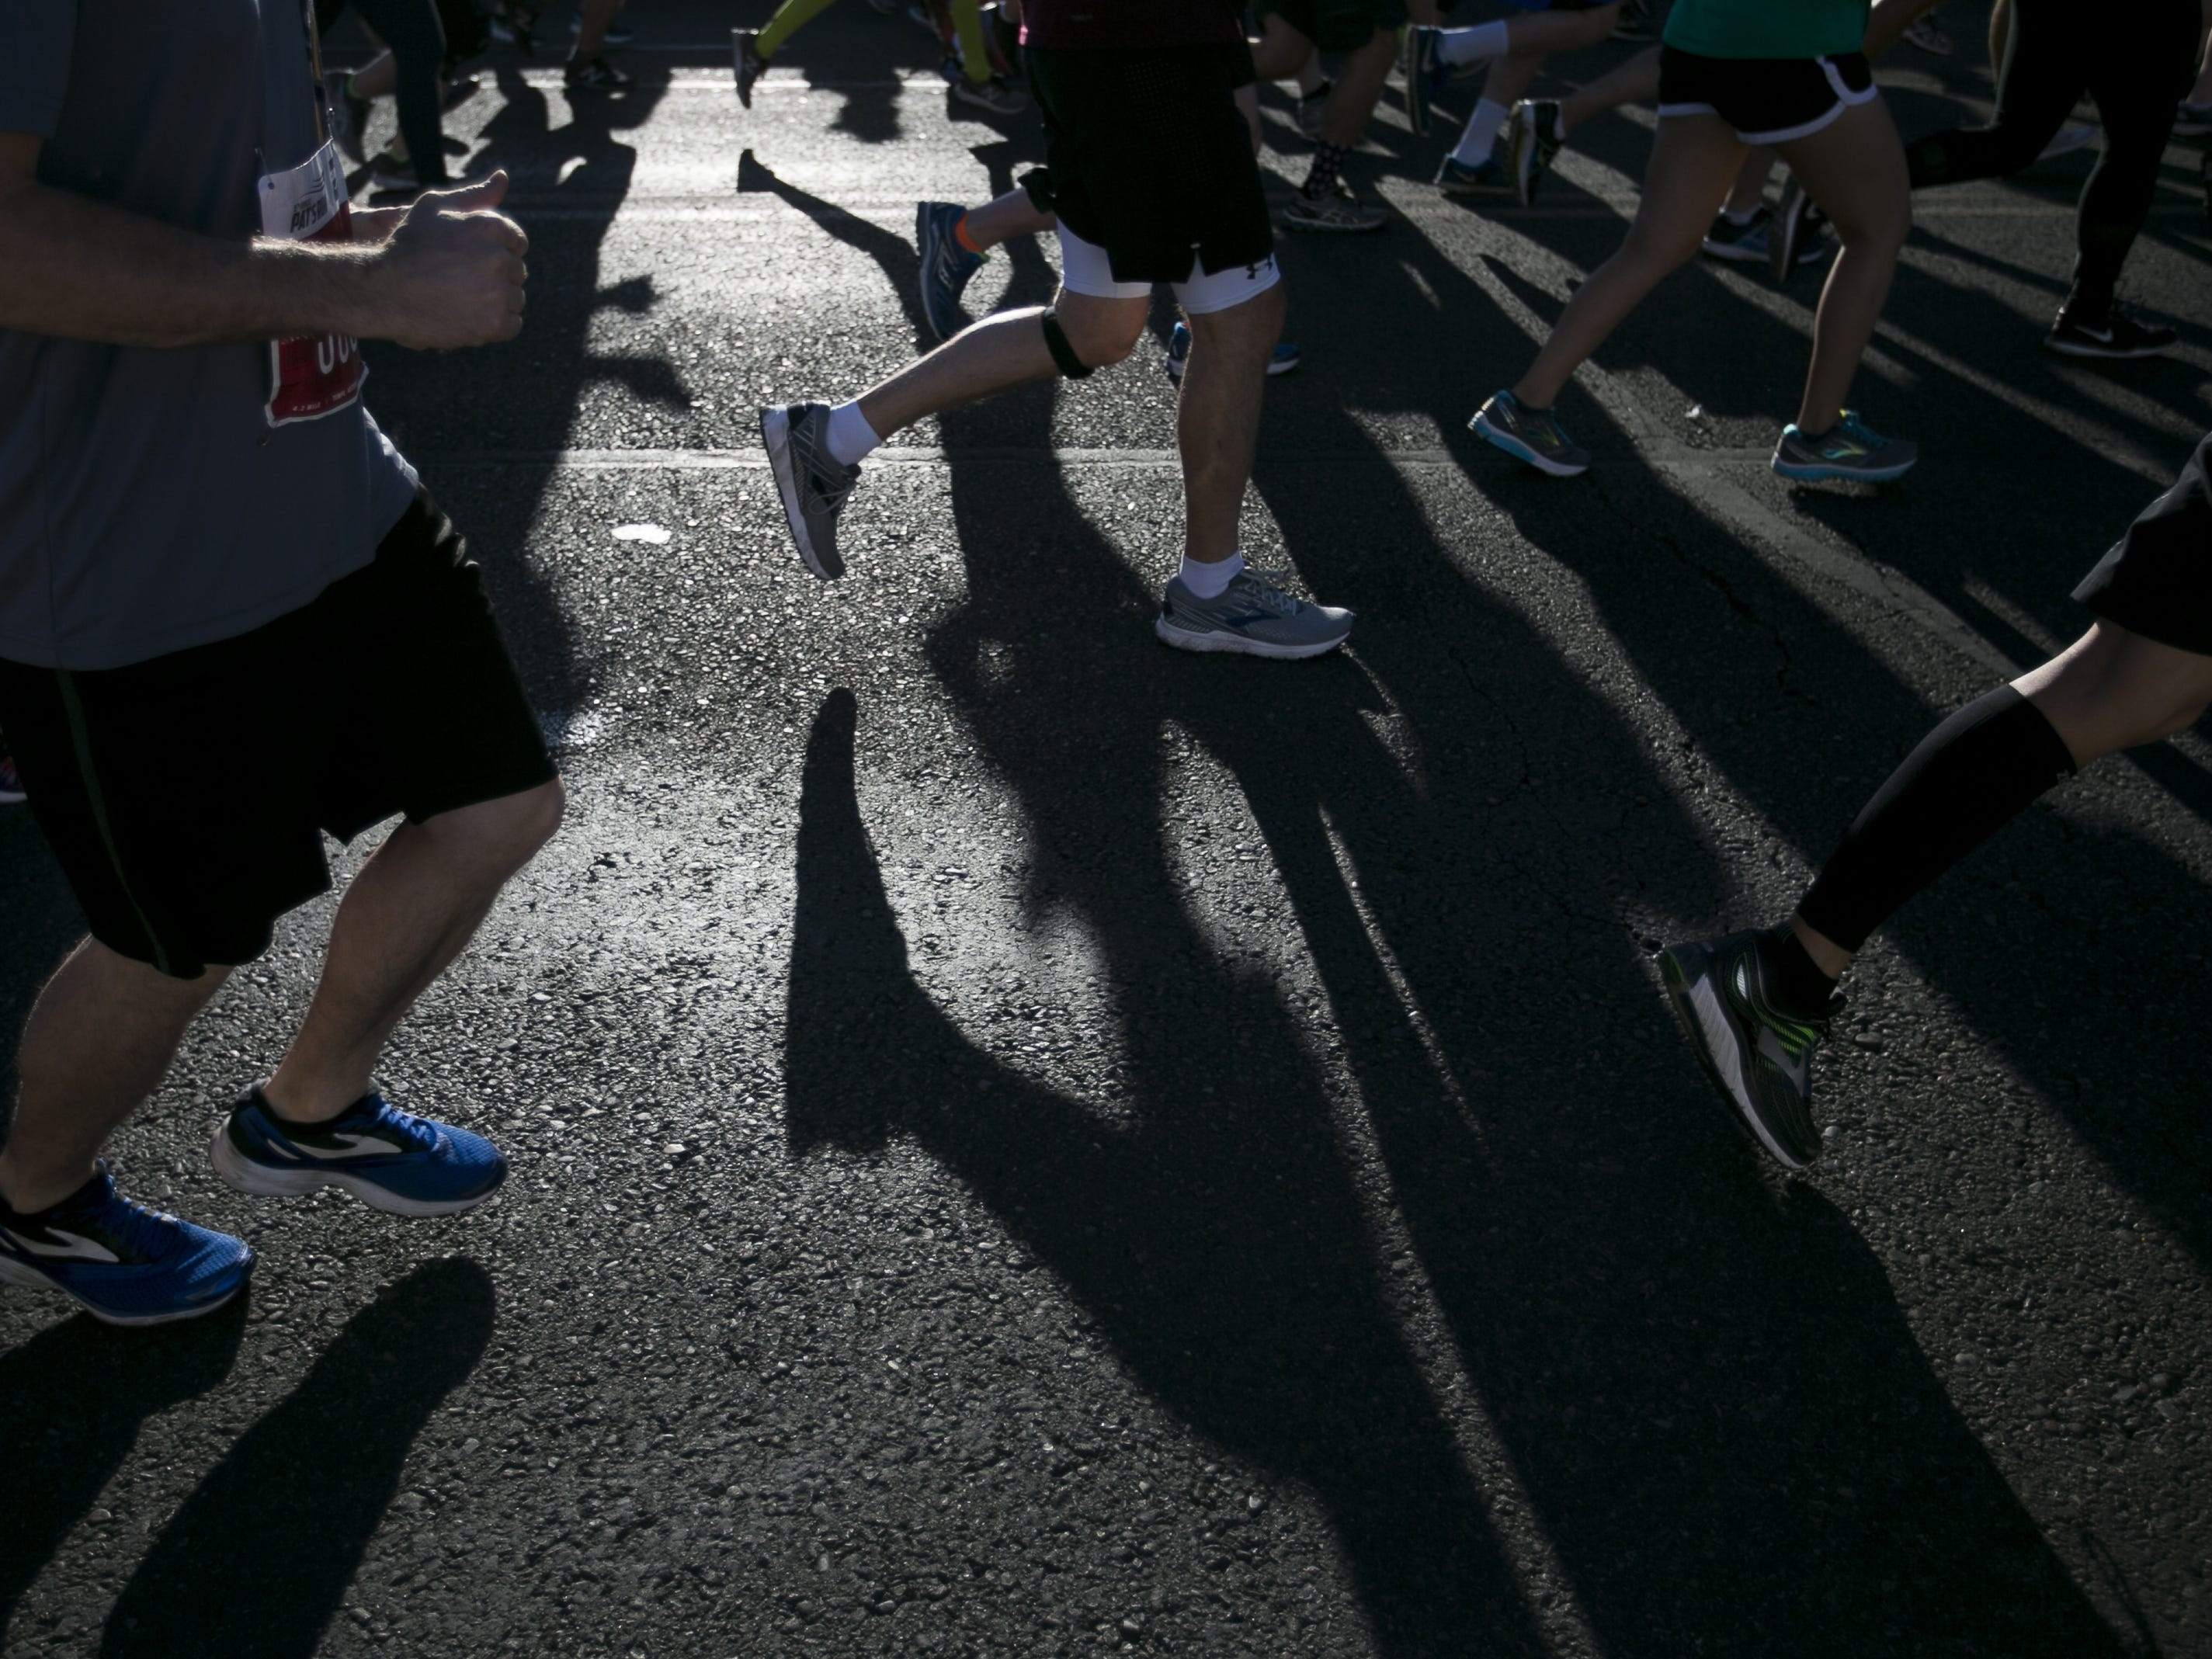 Participants leave the starting line in Pat's Run 2019 in Tempe on April 27, 2019.